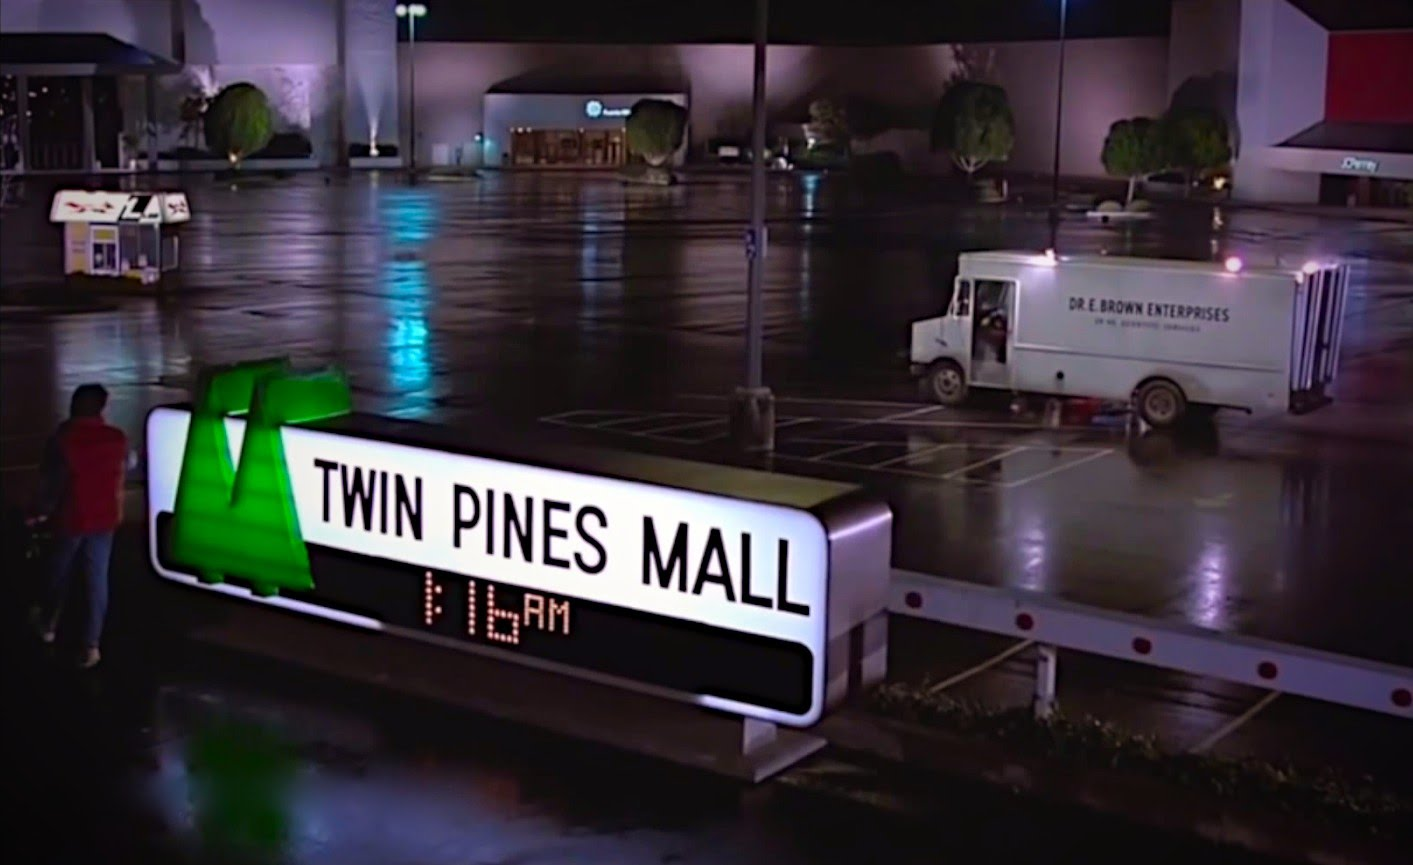 BackToTheFuture_TwinPinesMall